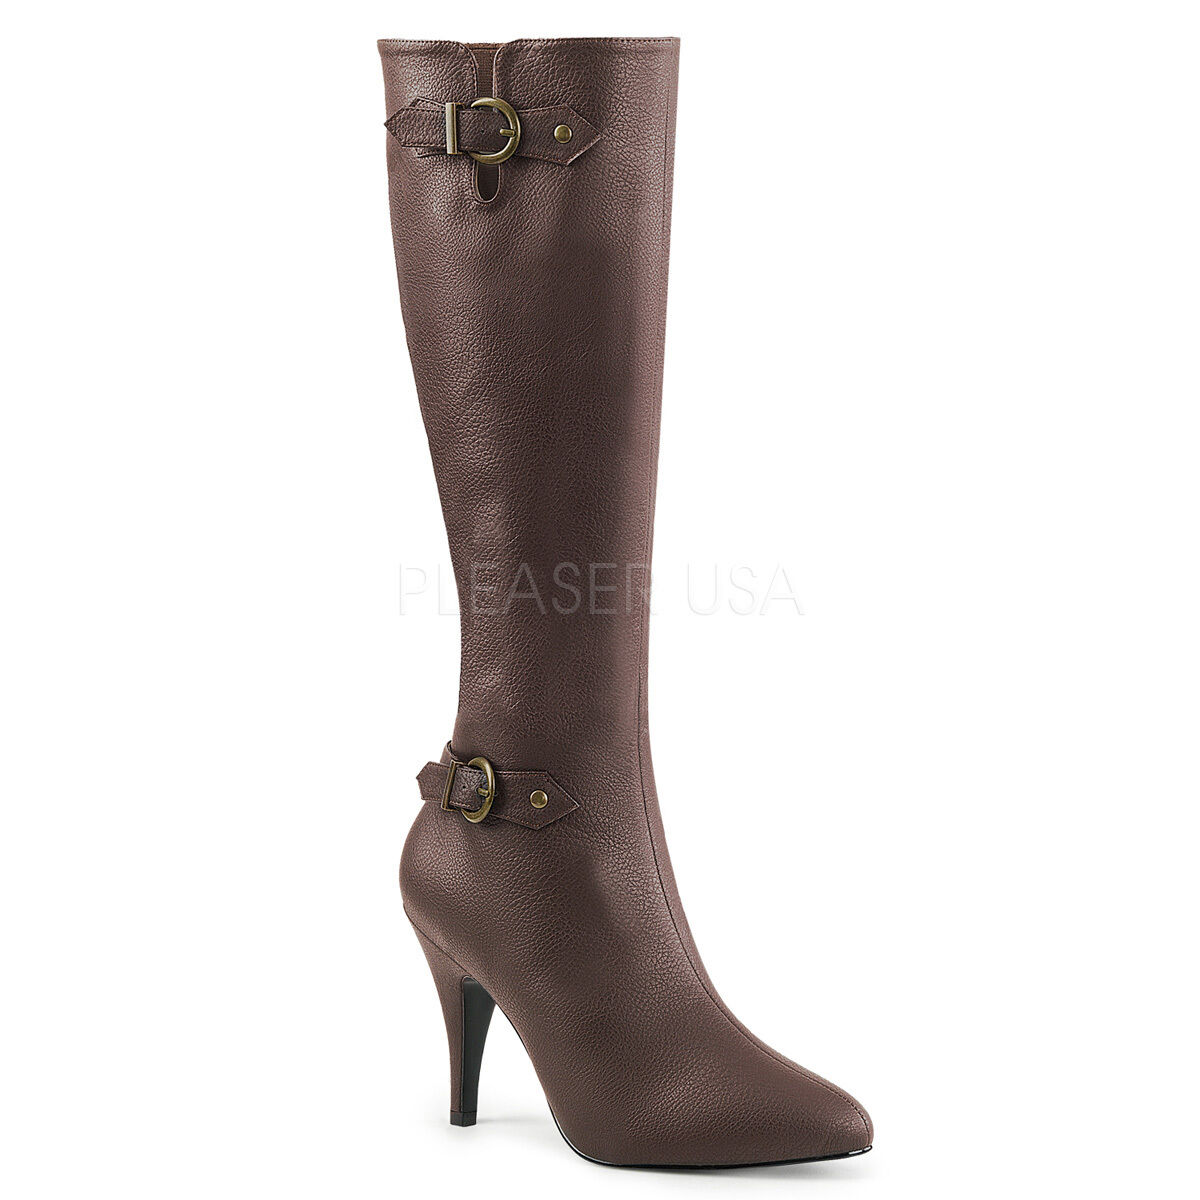 SALE PLEASER Sexy 4 4 4  Heel Brown Knee High Boots w  Buckle Large Sizes 14 b06d12